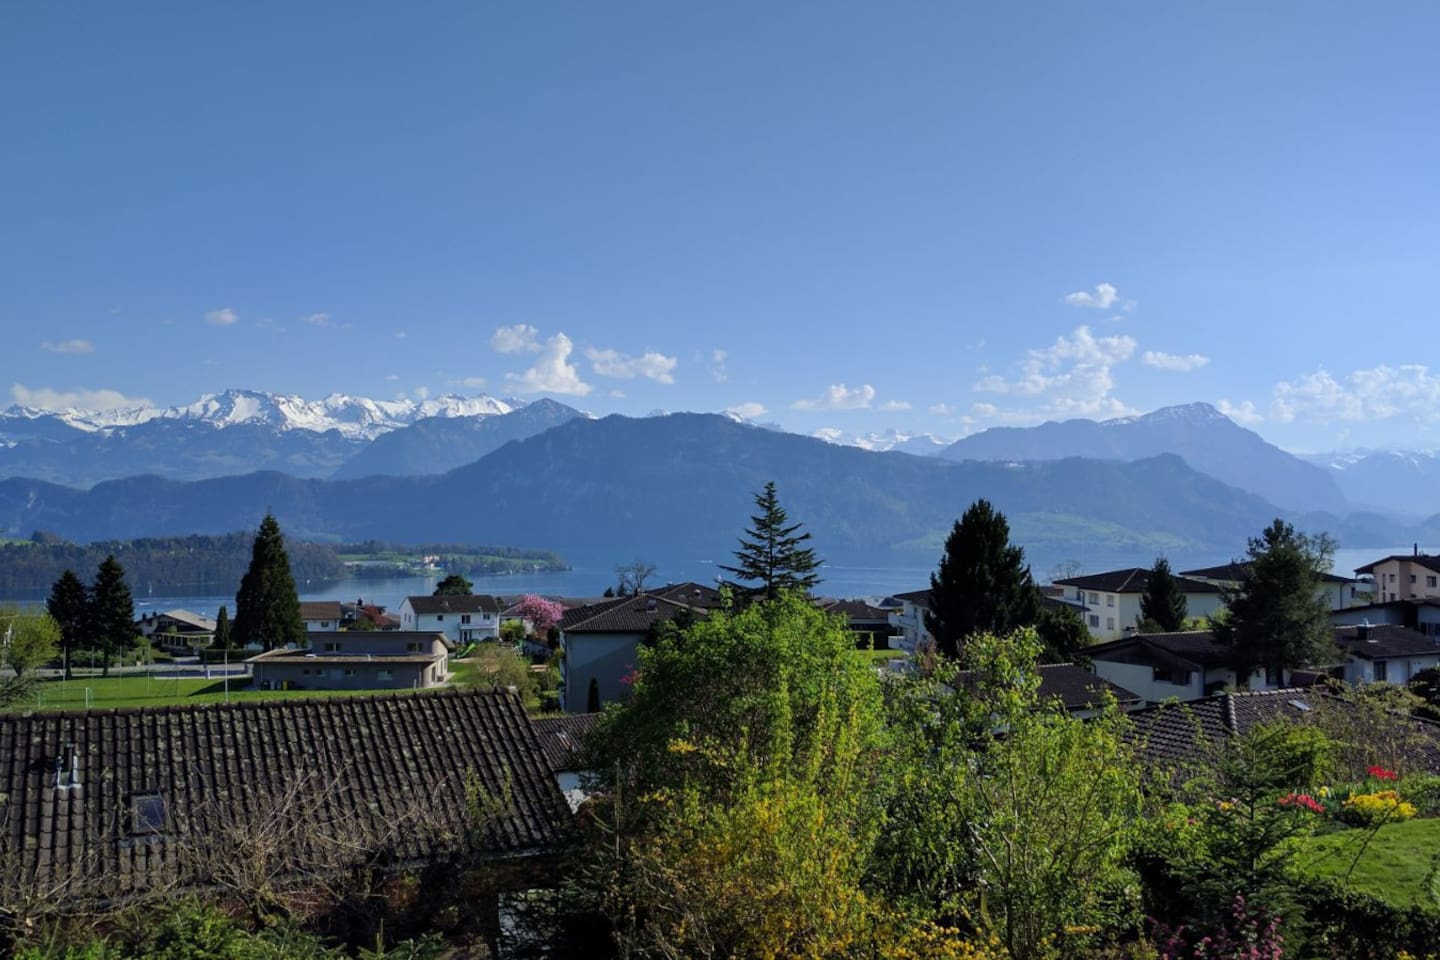 View on lake lucerne and mountains